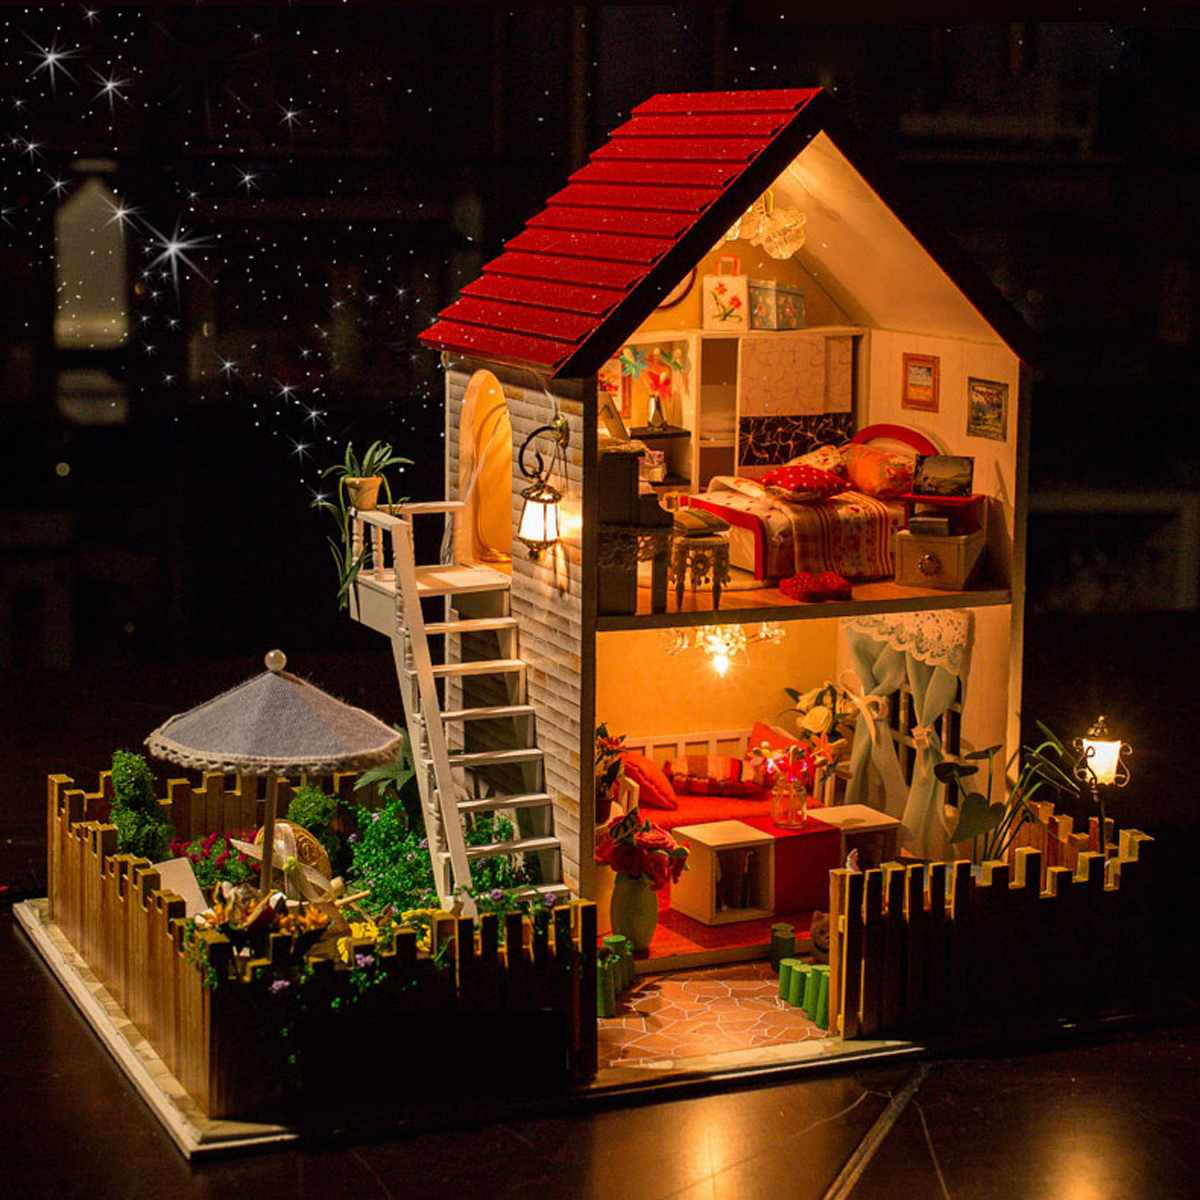 The Star Dreaming House DIY Dollhouse With Light Music Miniature Model Gift Decor Toy Gift For Friend ChildrenThe Star Dreaming House DIY Dollhouse With Light Music Miniature Model Gift Decor Toy Gift For Friend Children